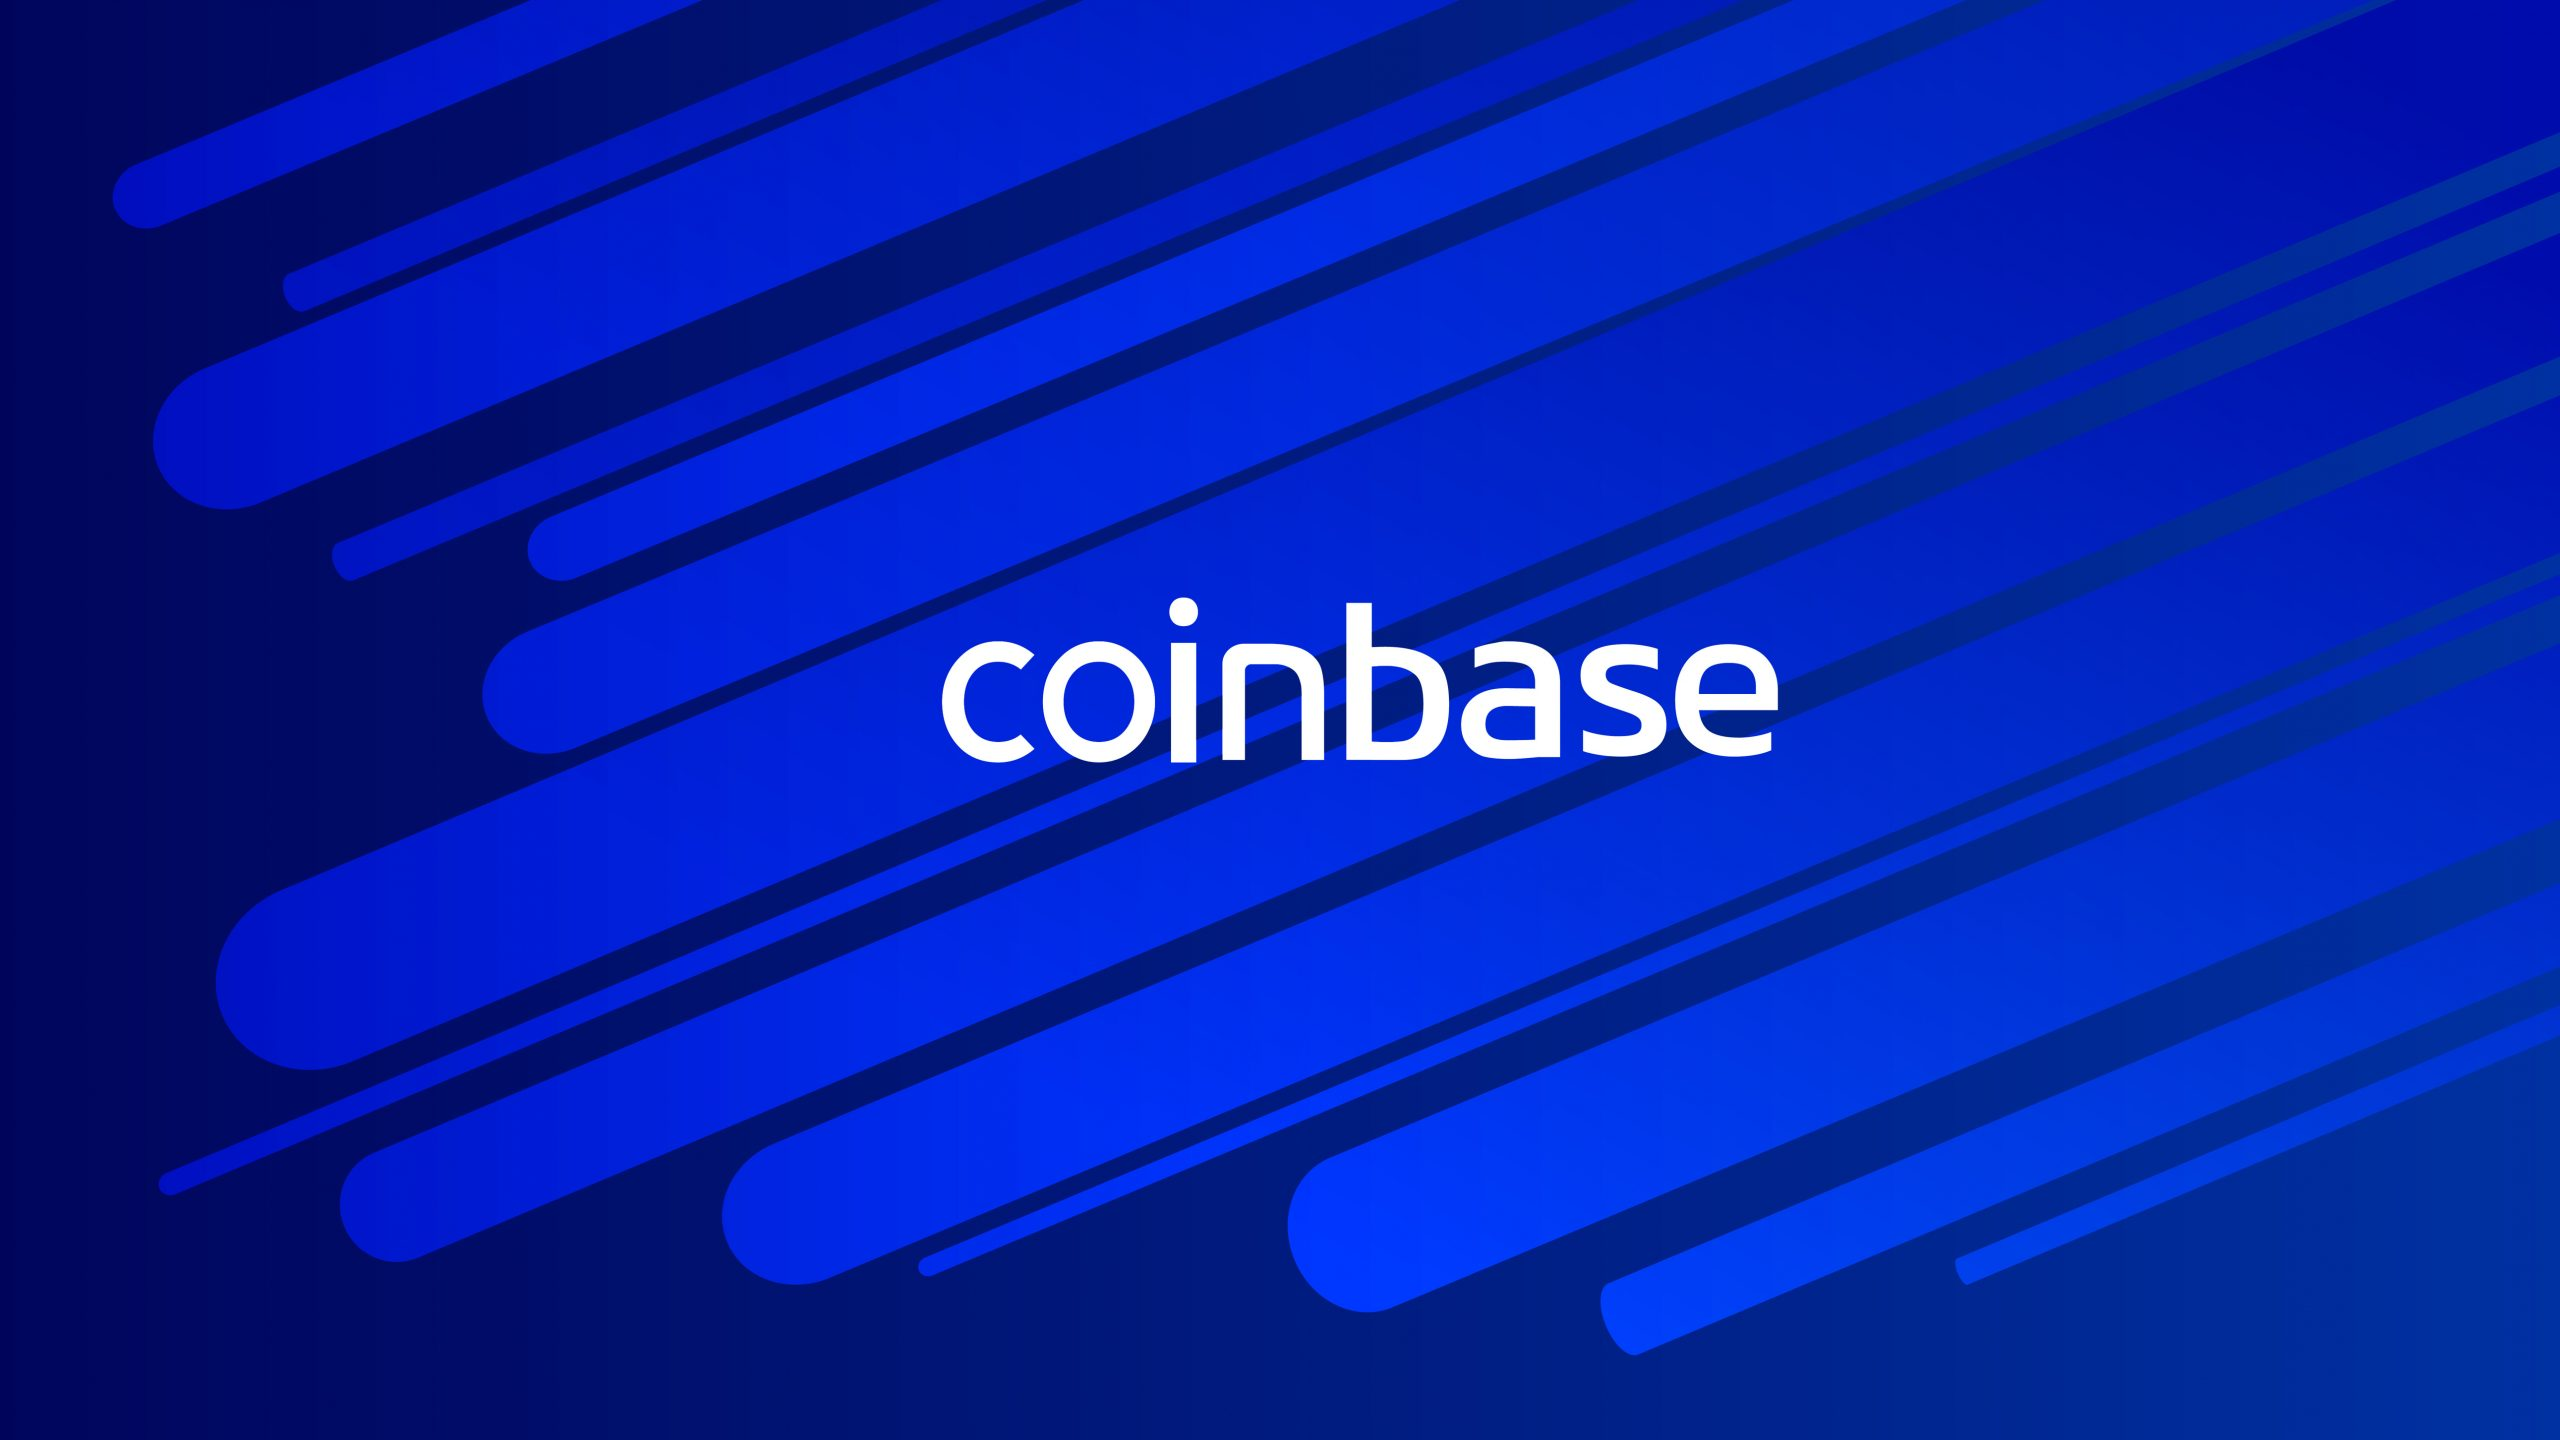 Coinbase paid millions to settle after investigation